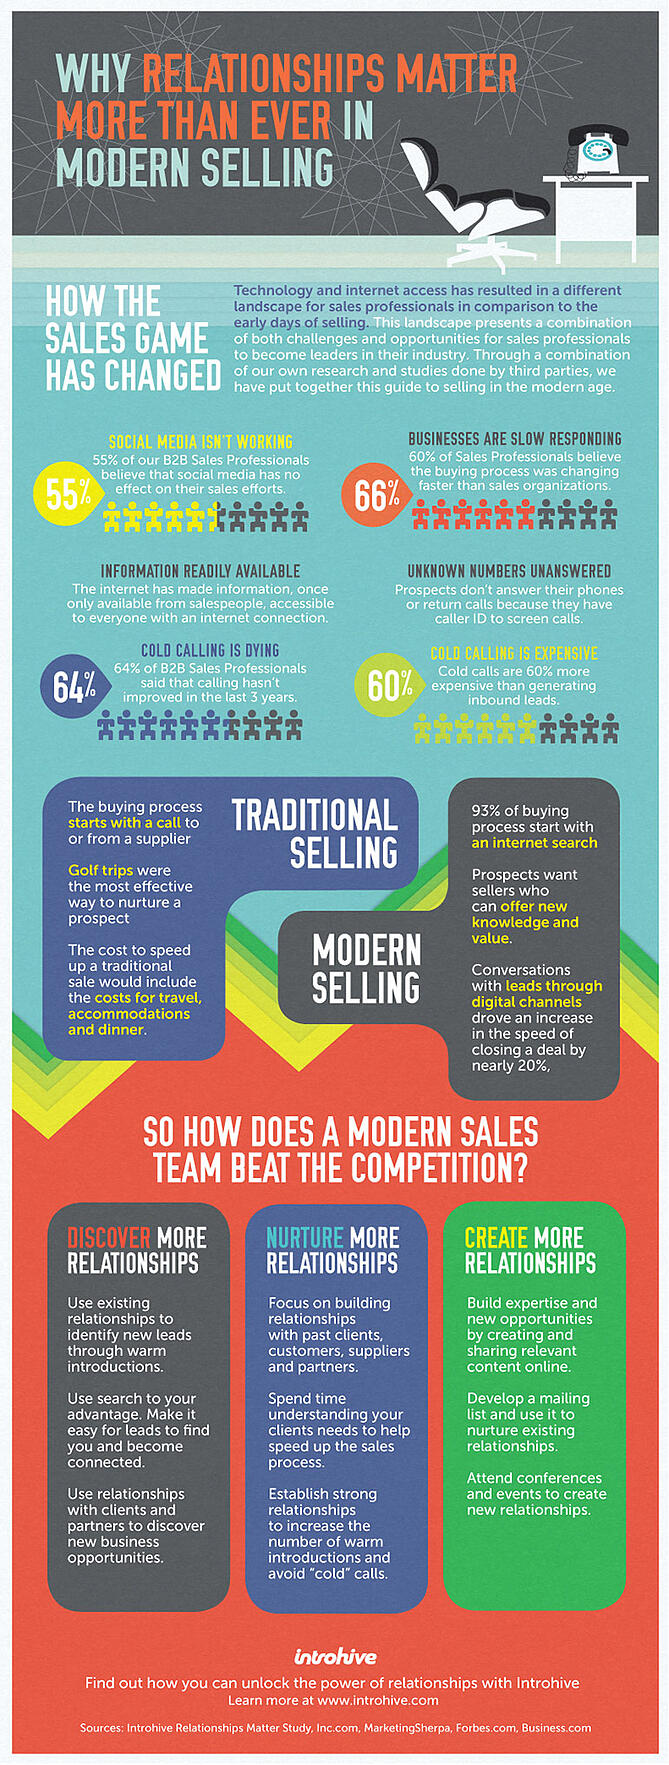 relationships-in-modern-selling-infographic